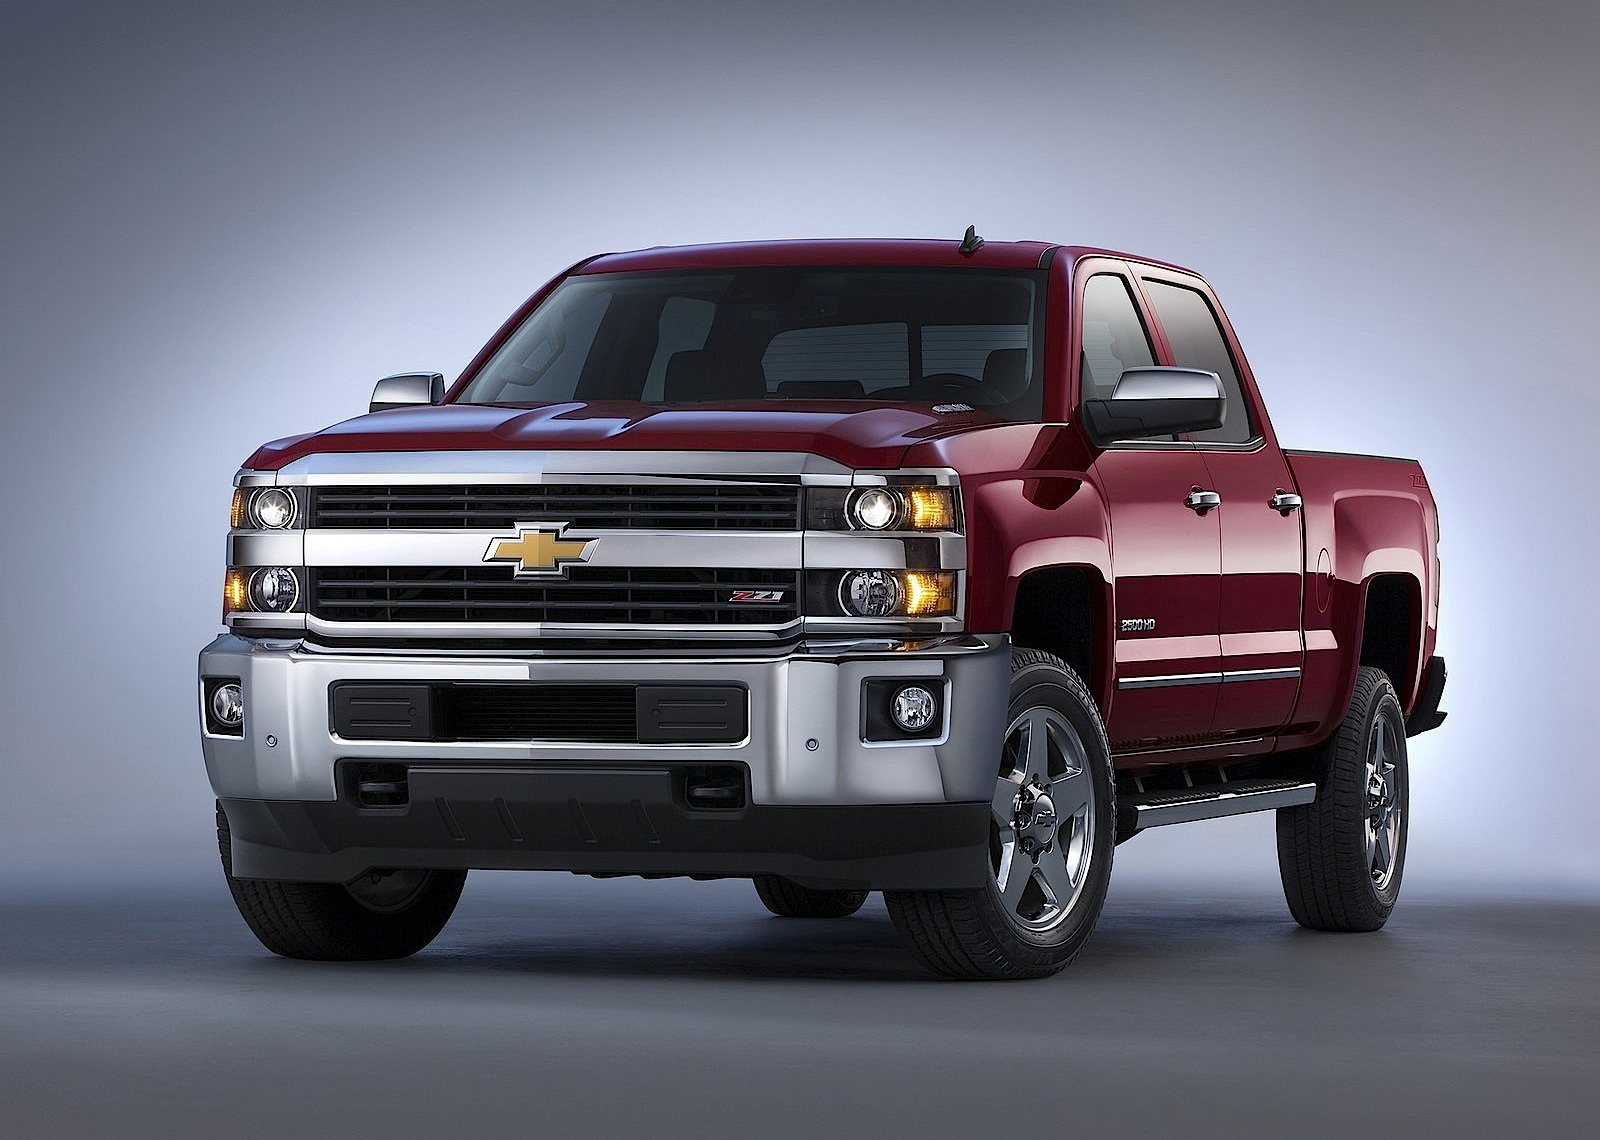 chevrolet silverado 3500 hd crew cab specs photos 2013. Black Bedroom Furniture Sets. Home Design Ideas